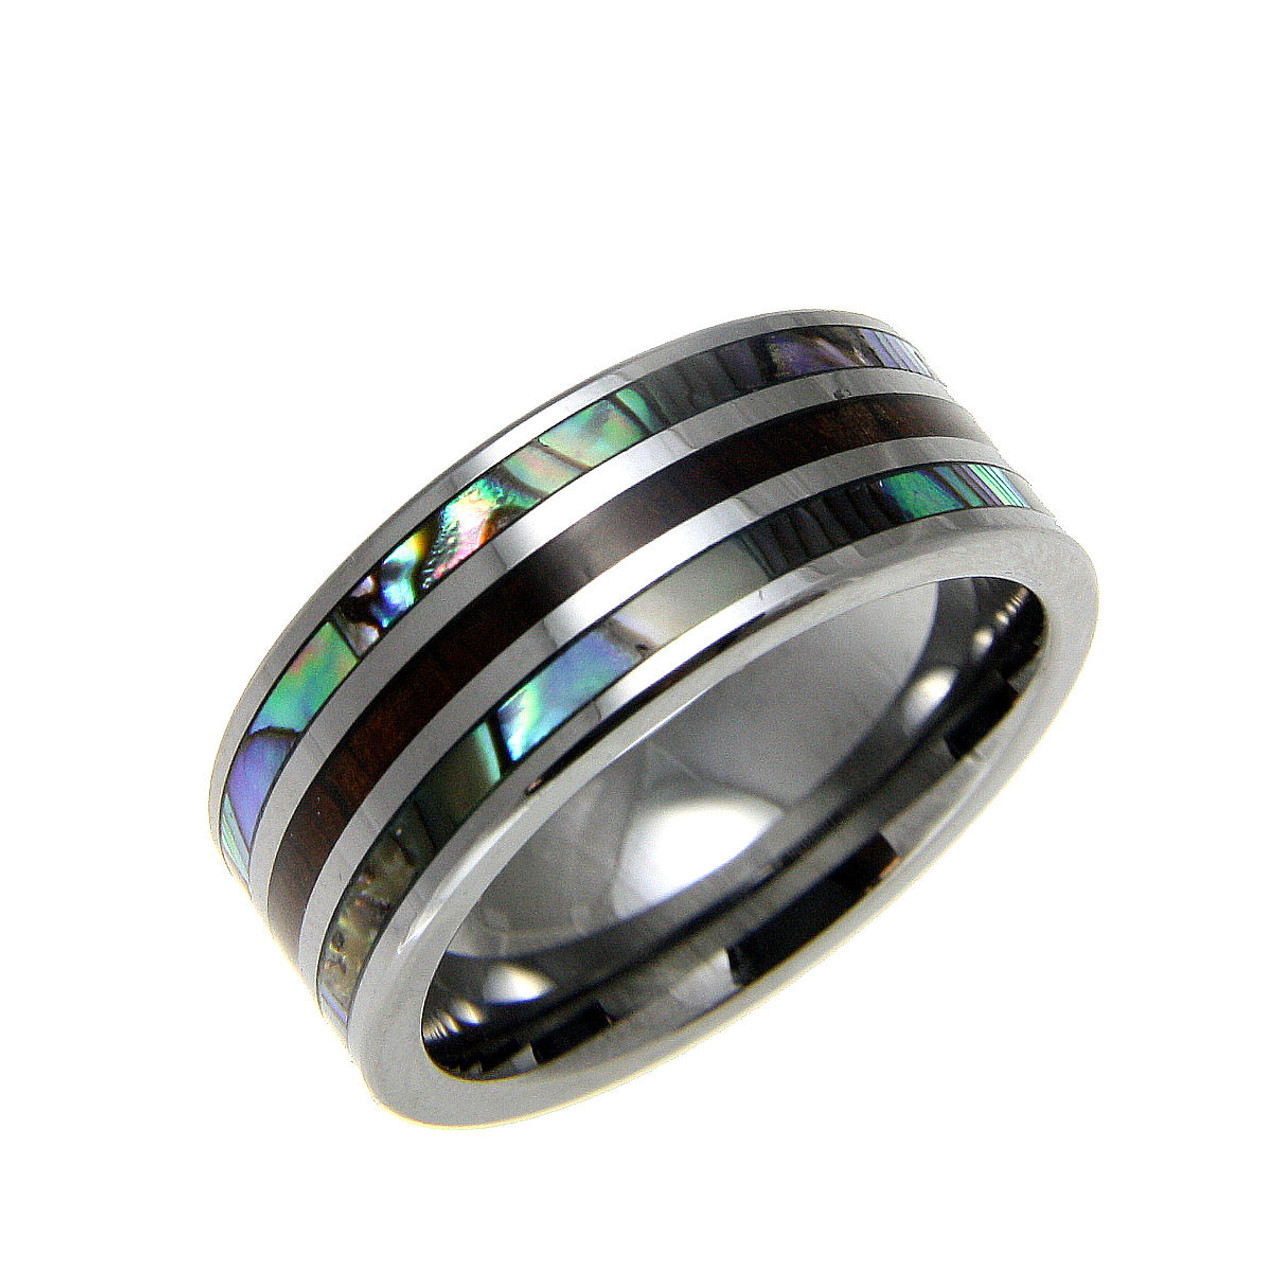 tungsten collections australian mattblackring black bands custom rings range best made